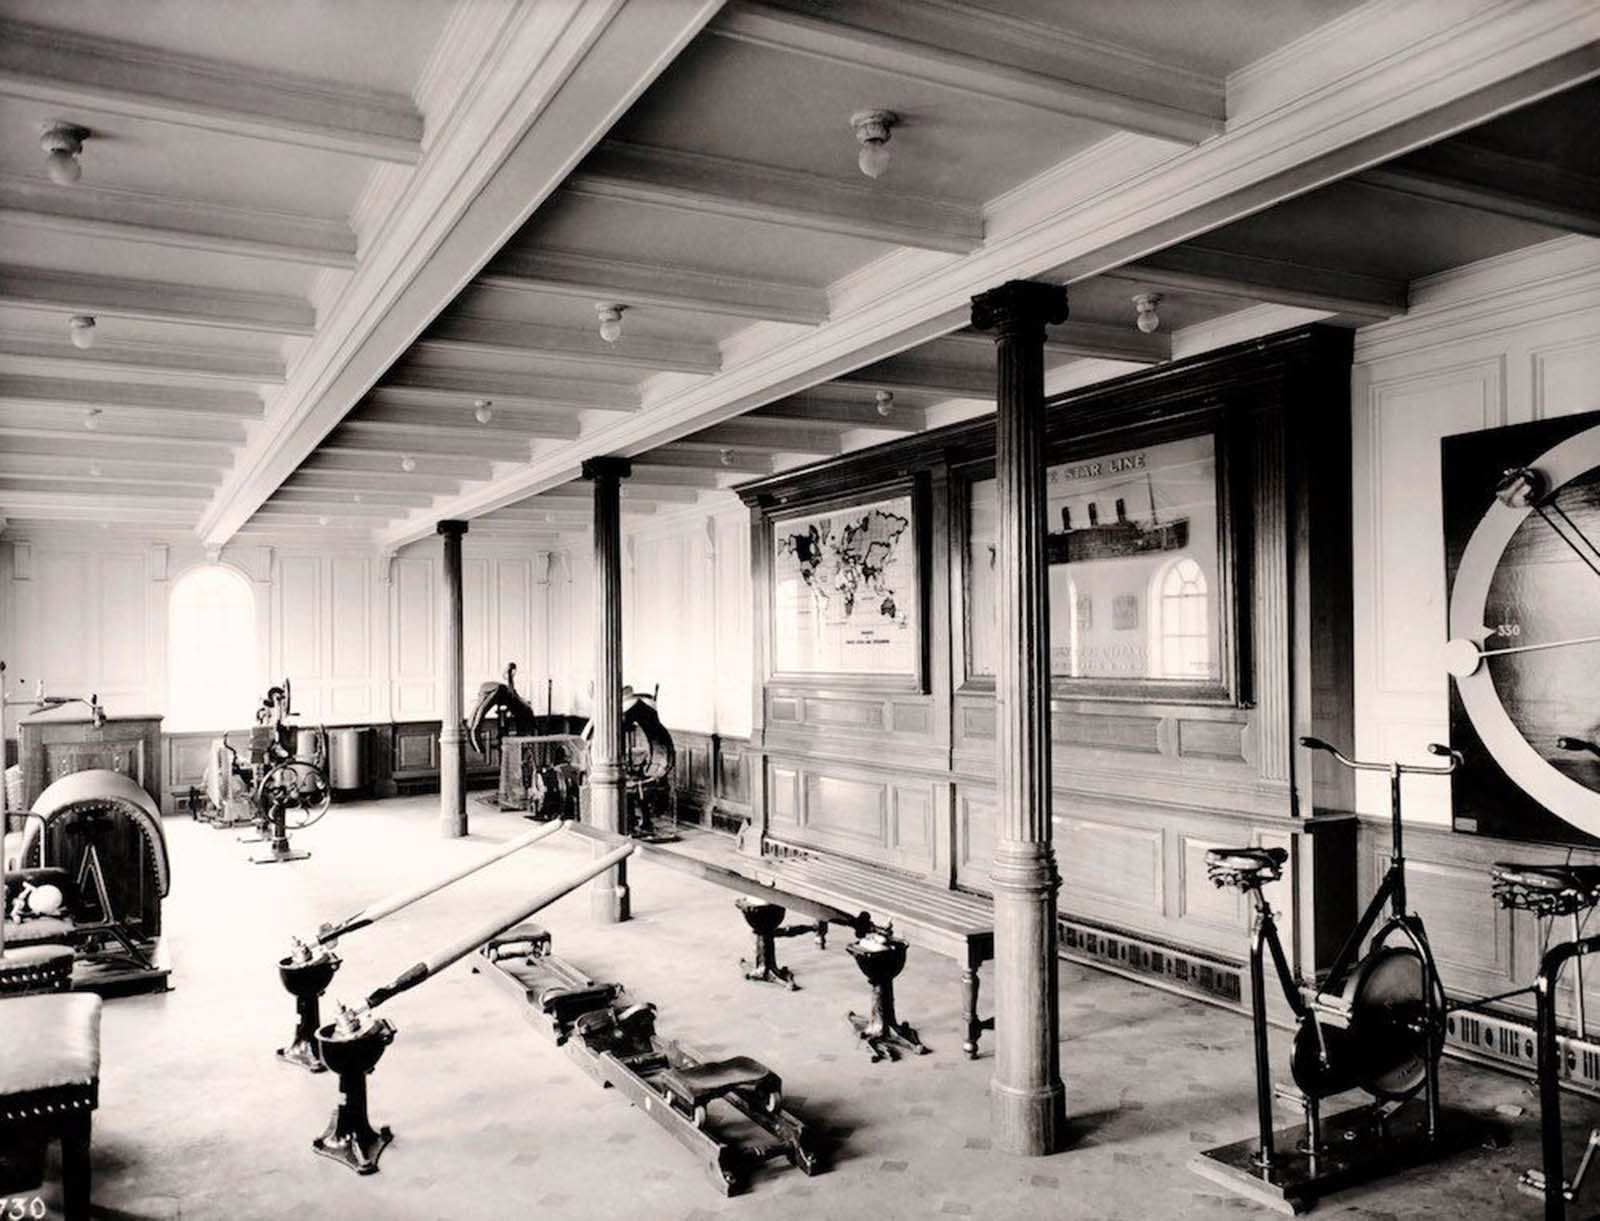 The first class gymnasium on board the Titanic. On the night of April 14, when the ship struck an iceberg, the physical instructor Mr. T. W. McCauley remained at his post and went down with the ship. March, 1912.